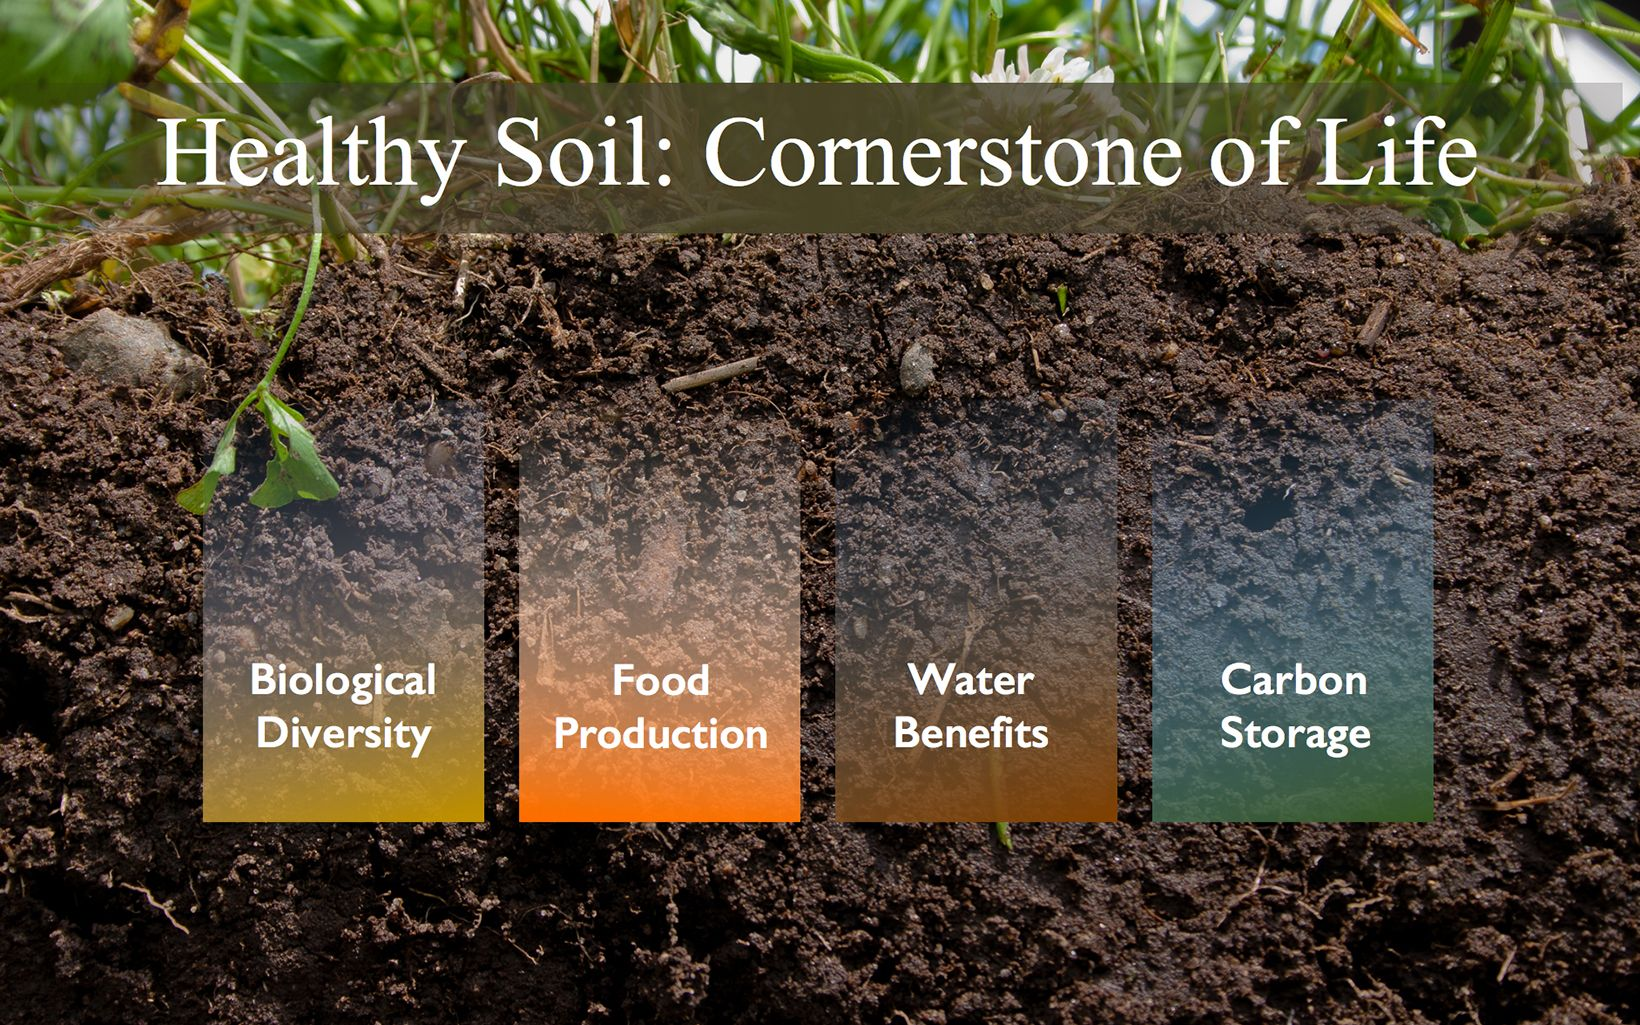 Infographic: reThink Soil Roadmap - Cornerstone of Life